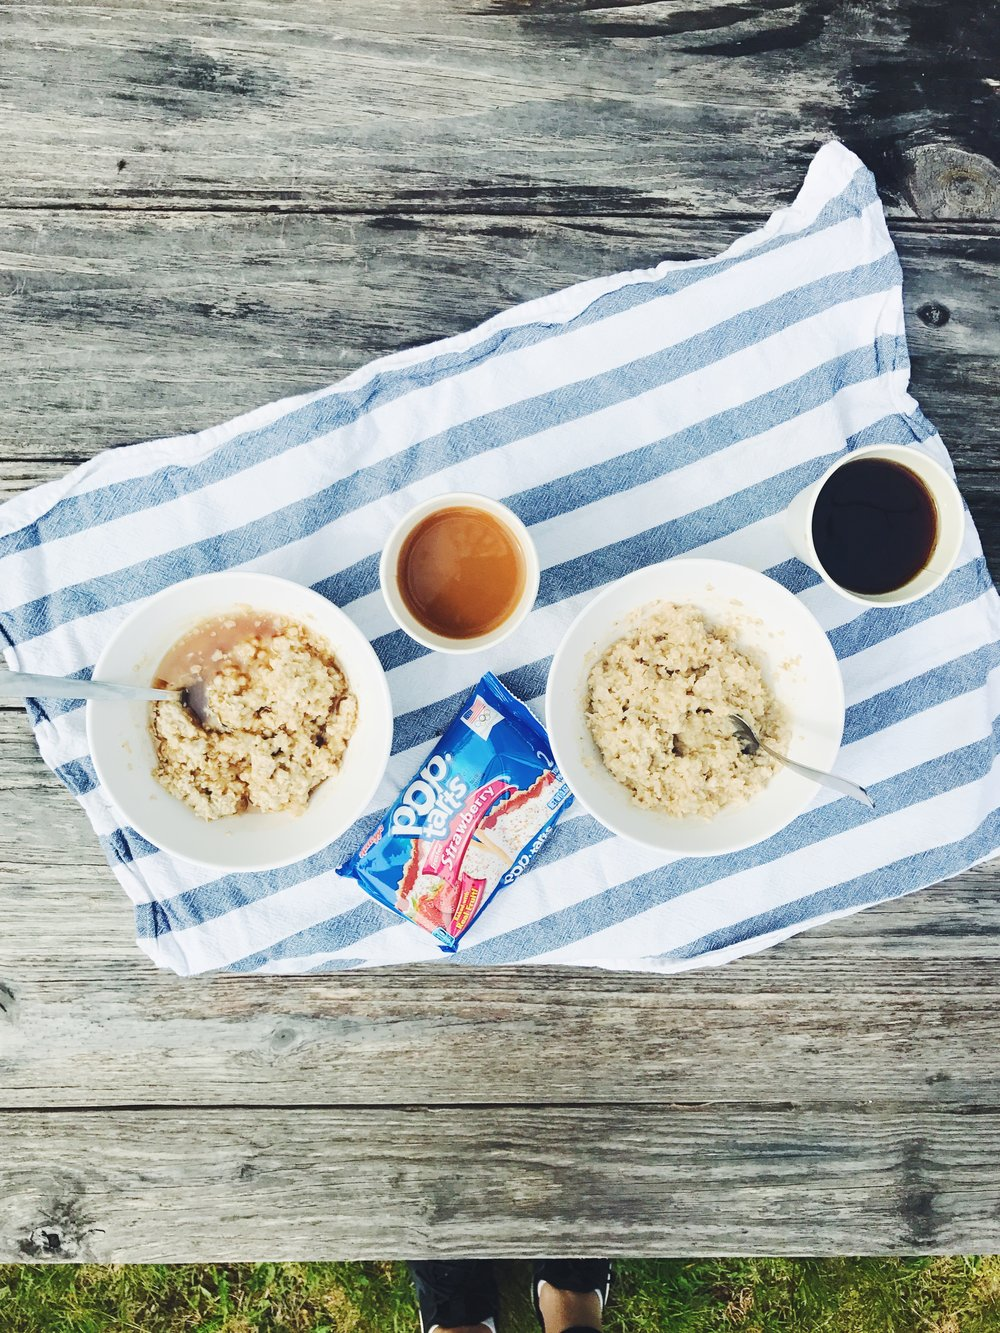 you just can't really beat oatmeal with locally made syrup and pop-tarts for breakfast. ;)